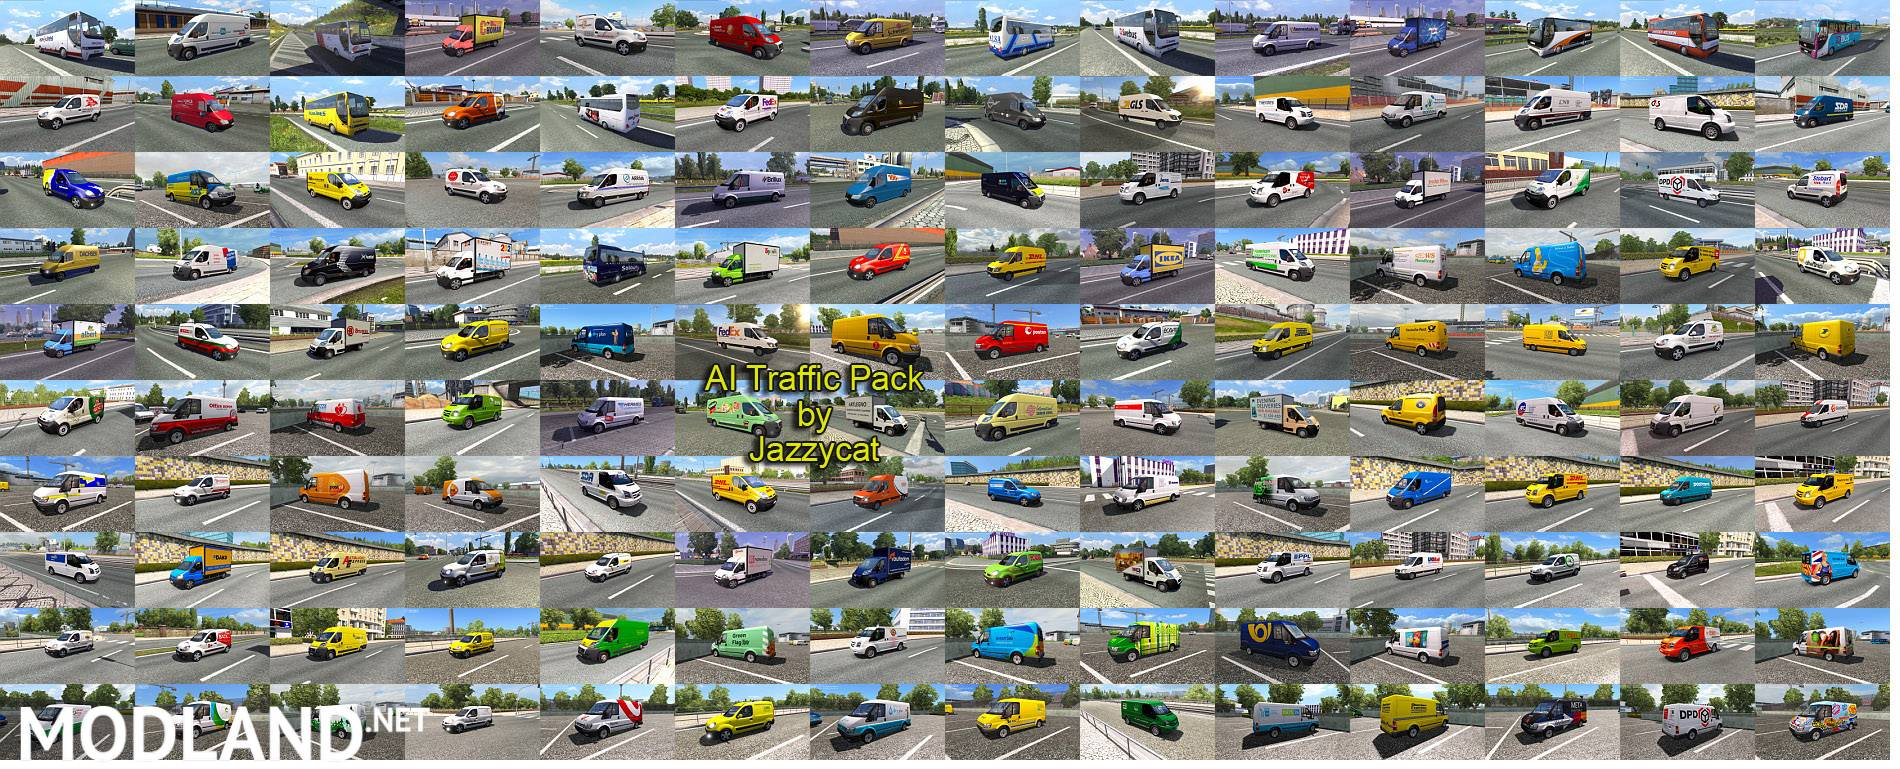 Ai Traffic Pack By Jazzycat V 3 5 Mod For Ets 2